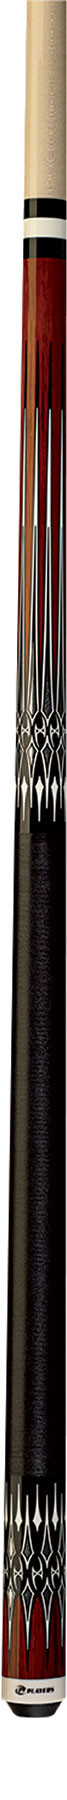 Players G-3397 Brown Exotic Rengas Pool Cue Stick